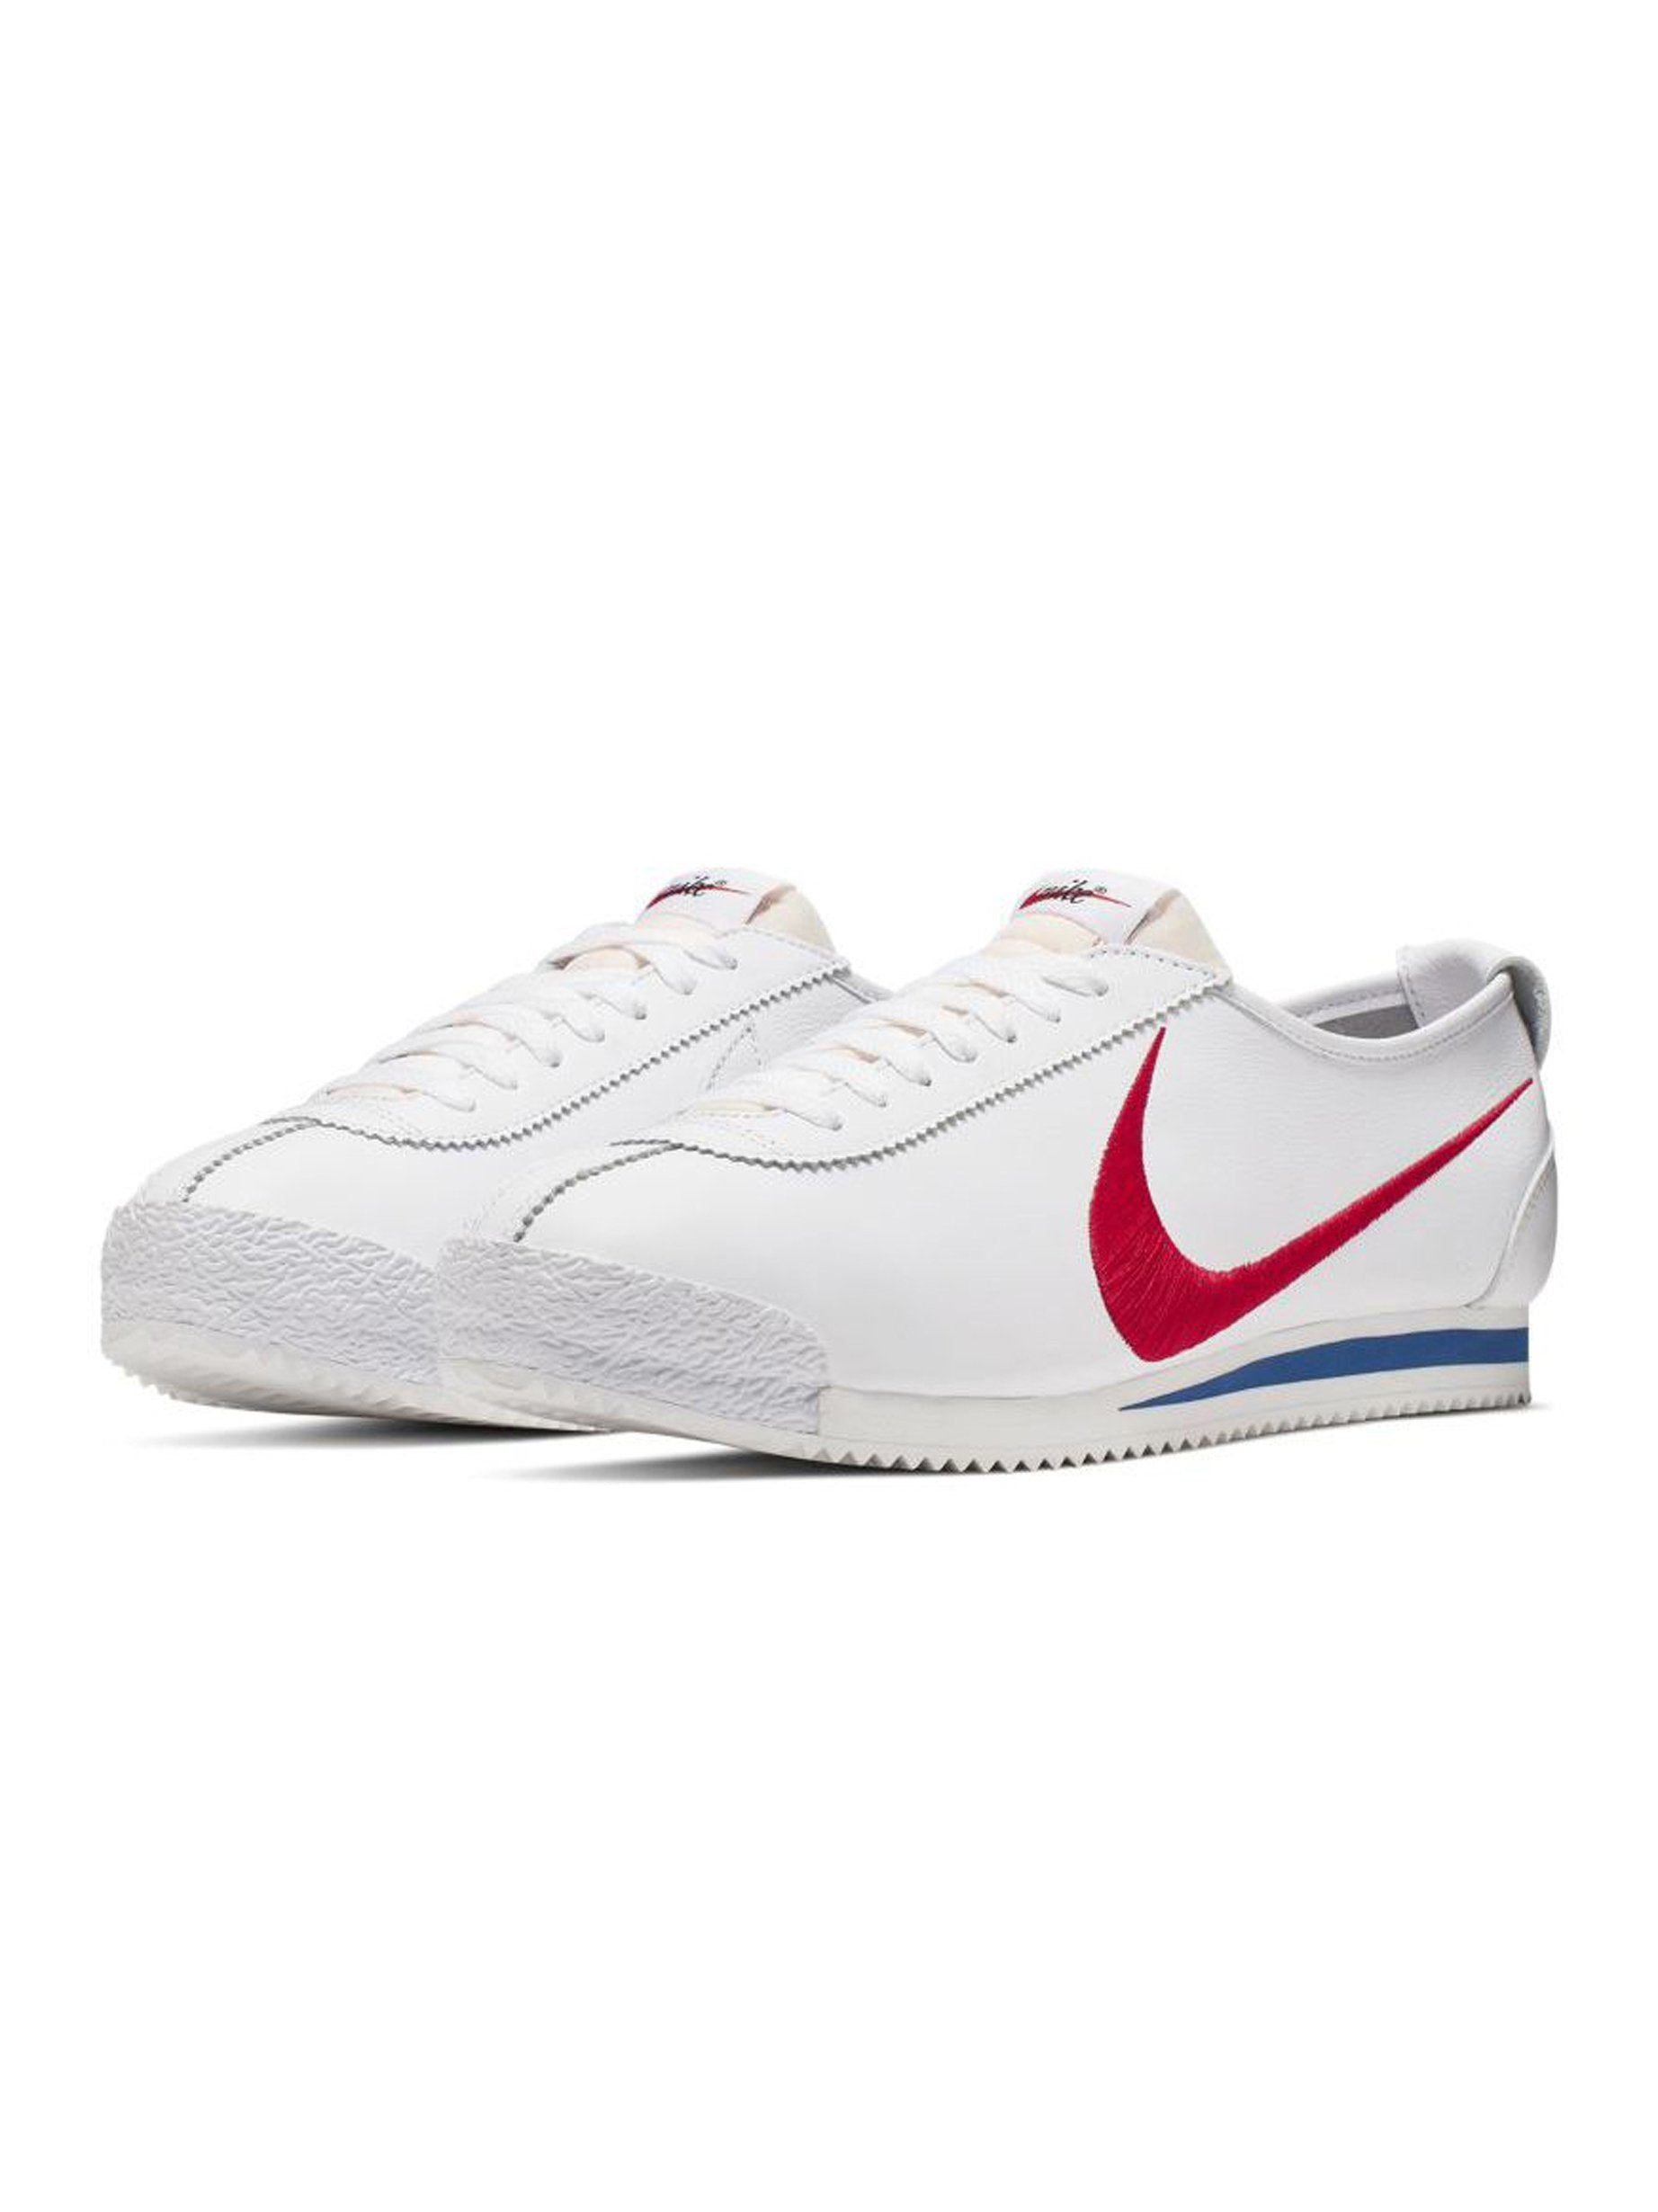 White / Varsity Red/ Game Royal Nike Cortez '72 Shoedog Q (Swoosh) 2